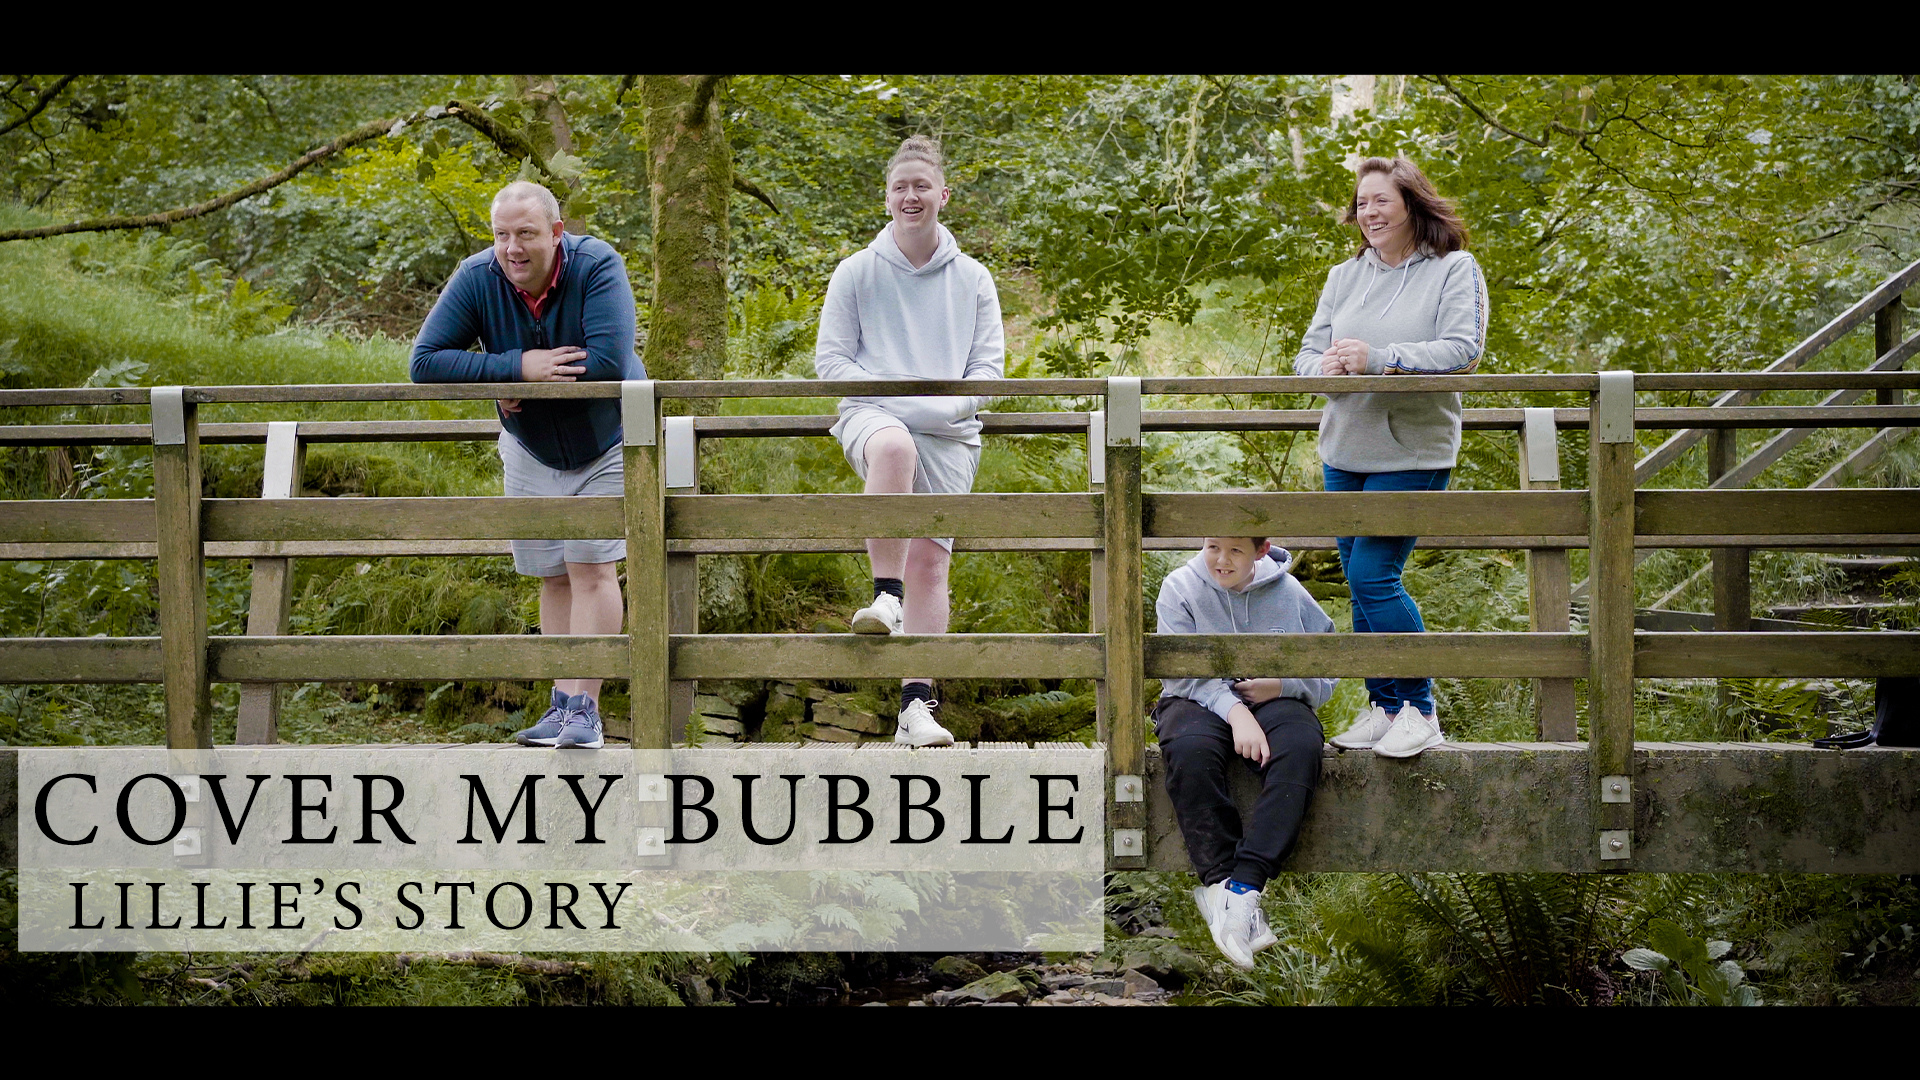 This Is Us - Cover My Bubble, Lillie's Story